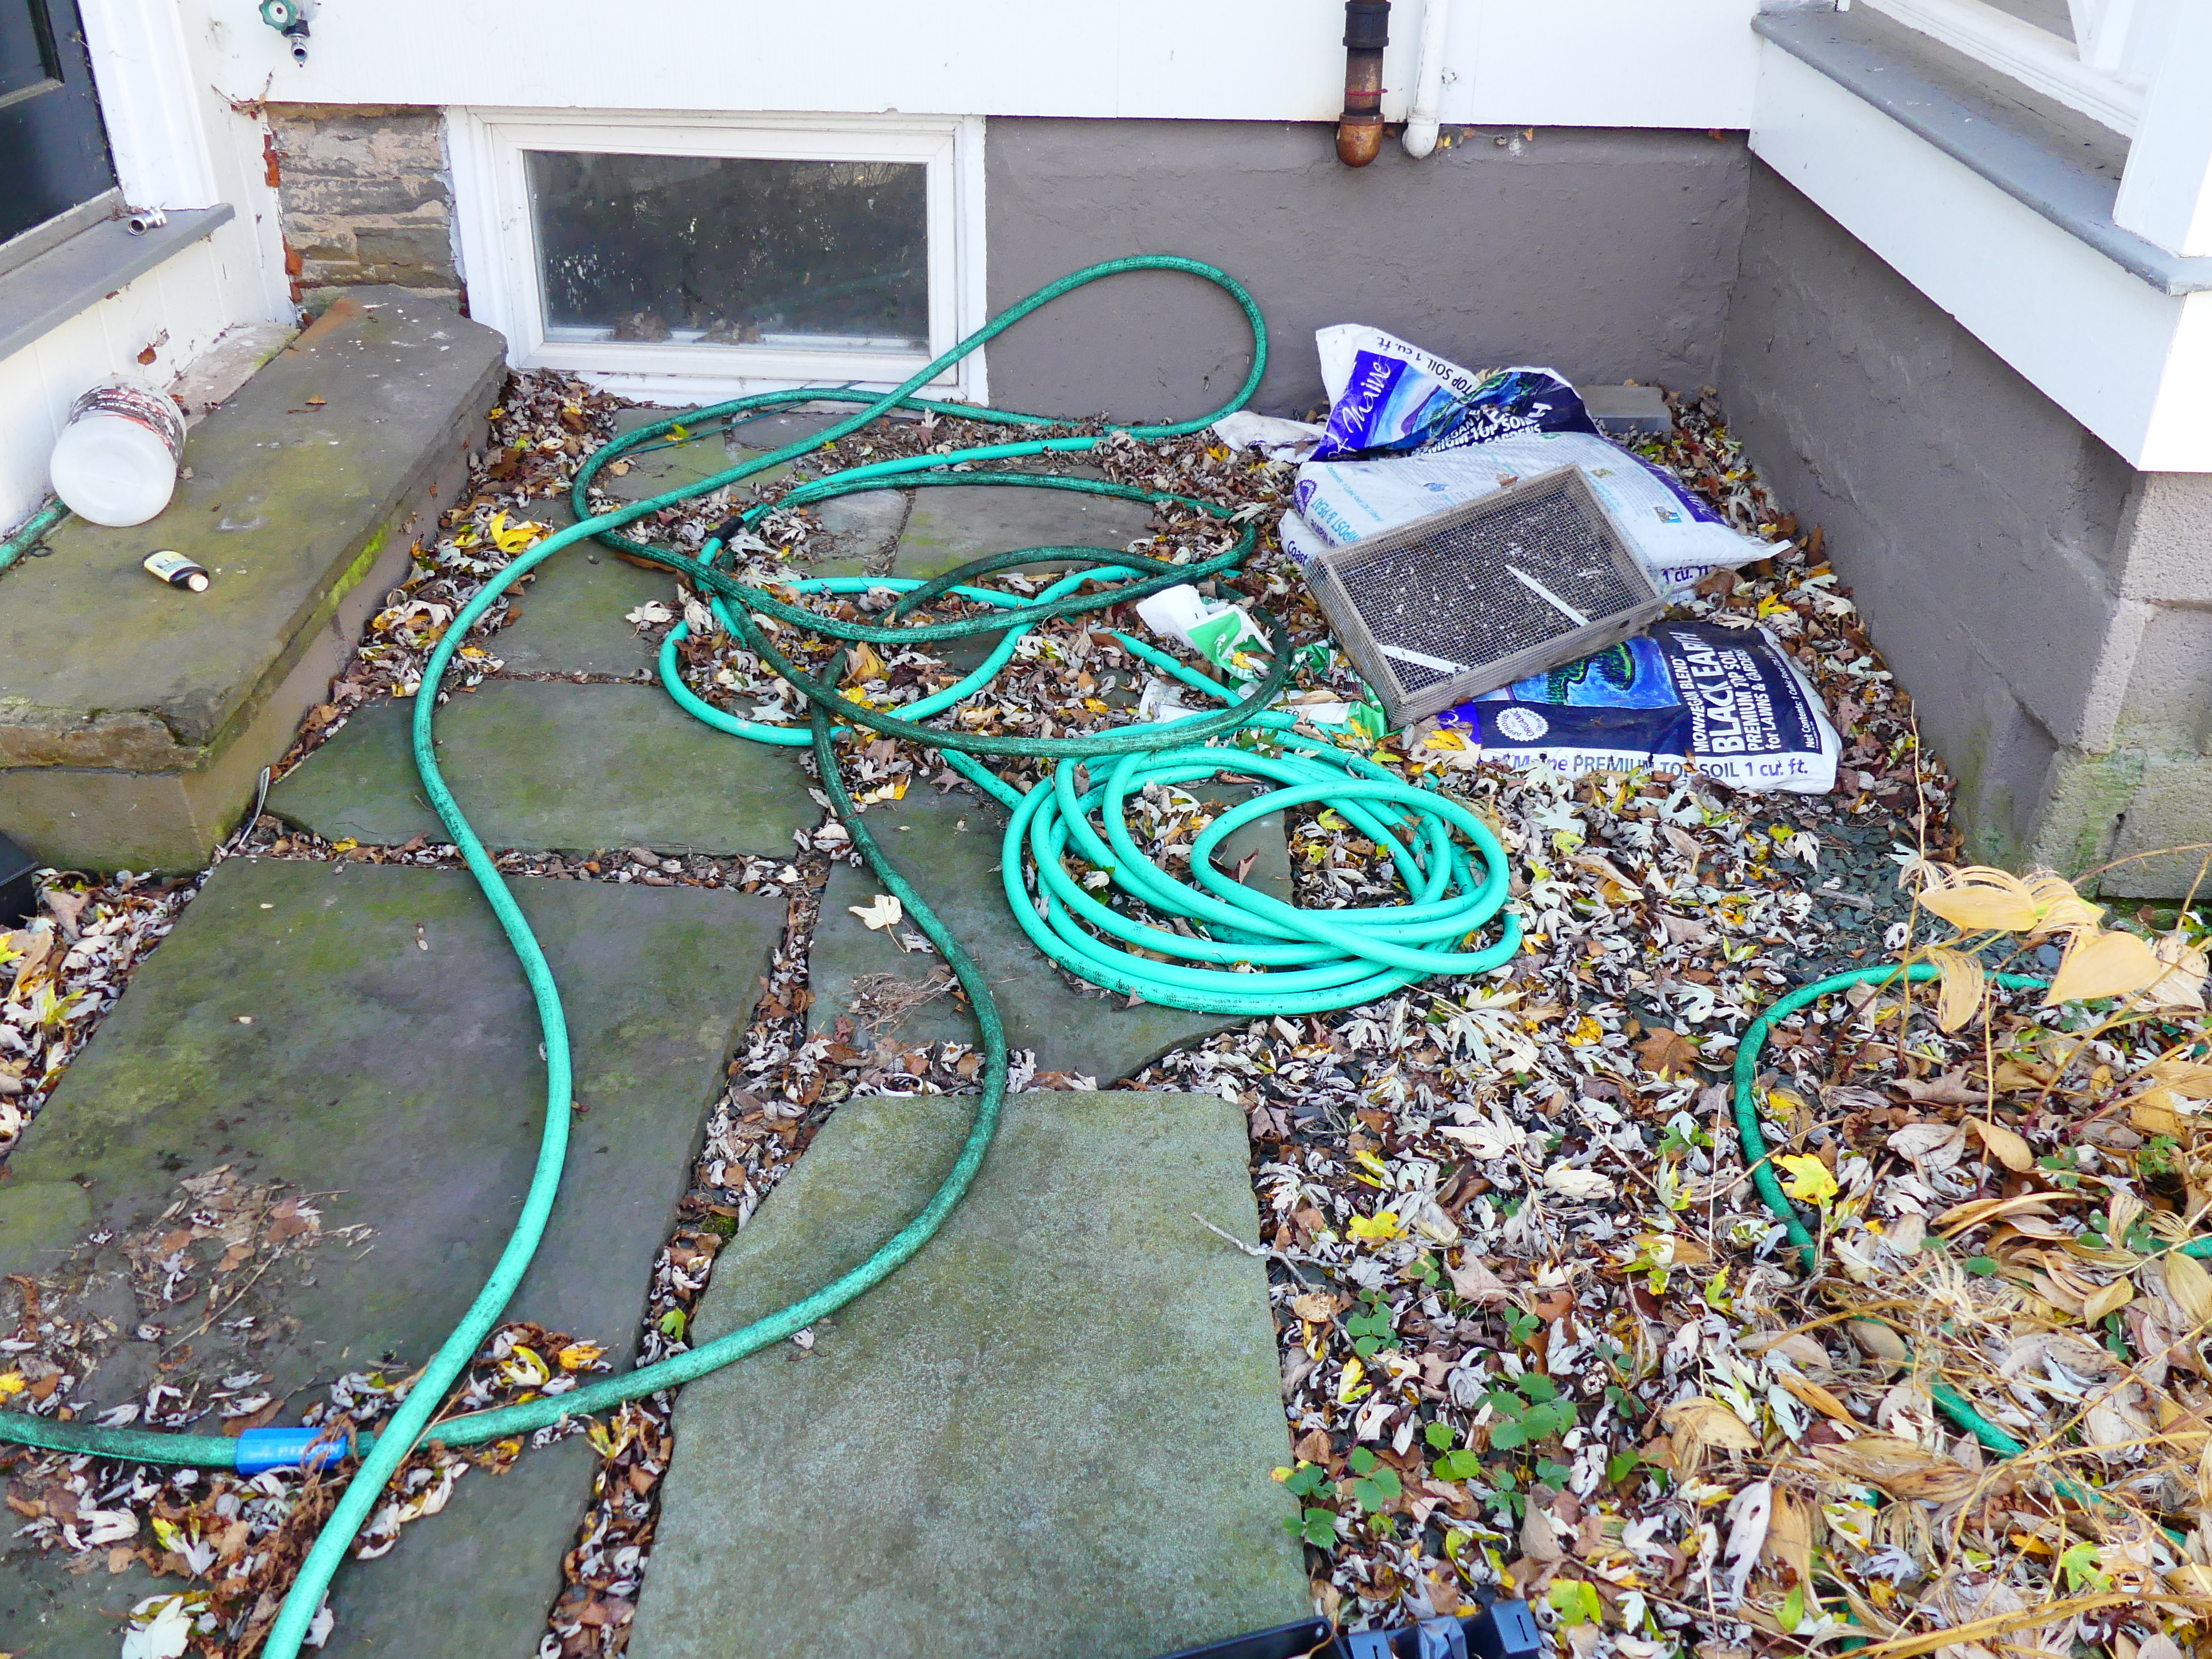 At 7 a.m. on November 2 Westhampton Beach recorded 31 degrees. Once it drops below 40 degrees, most garden hoses become stiff and hard to coil for storage. On a sunny day stretch them out in the sun, allow them to drain, then coil and store for the winter. ANDREW MESSINGER